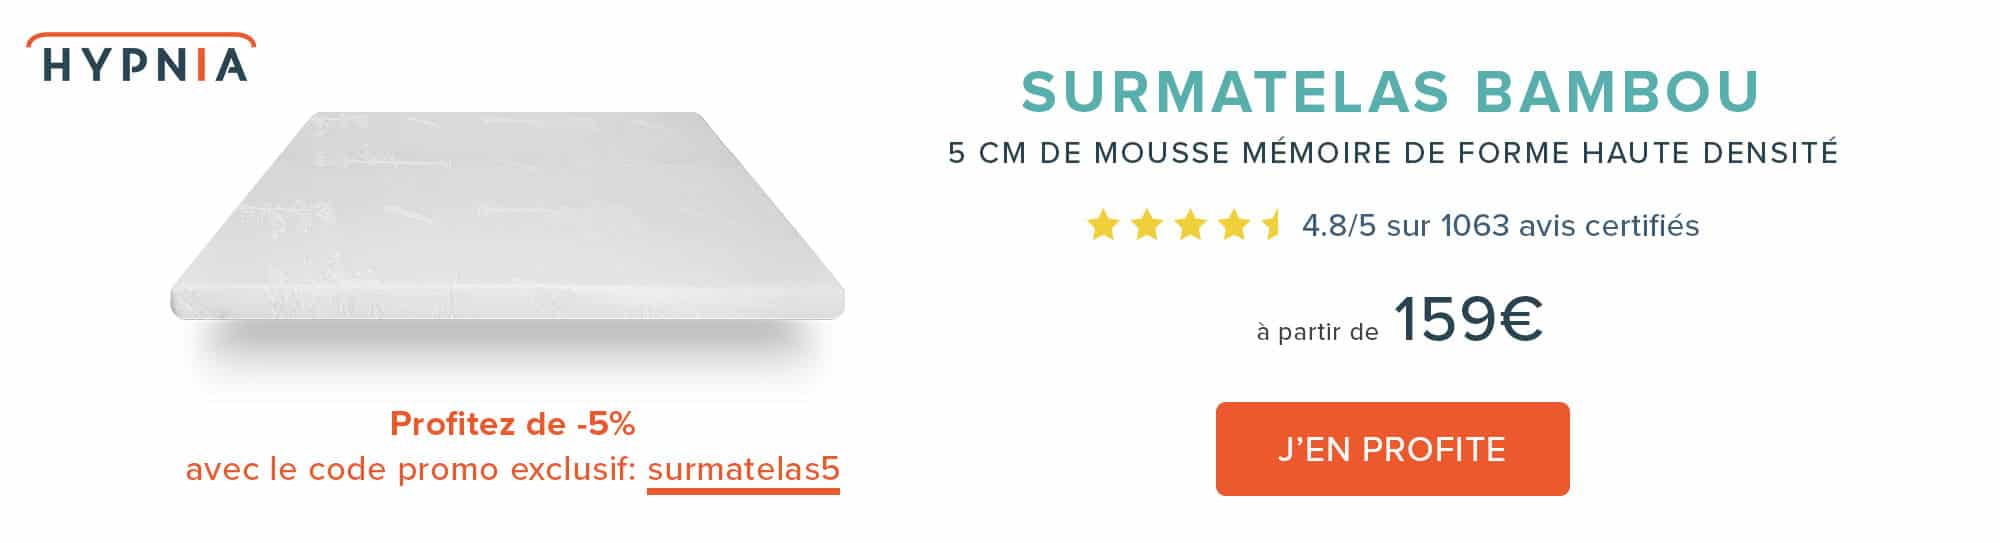 meilleur surmatelas 2018 test comparatif avis sur les tops produits. Black Bedroom Furniture Sets. Home Design Ideas